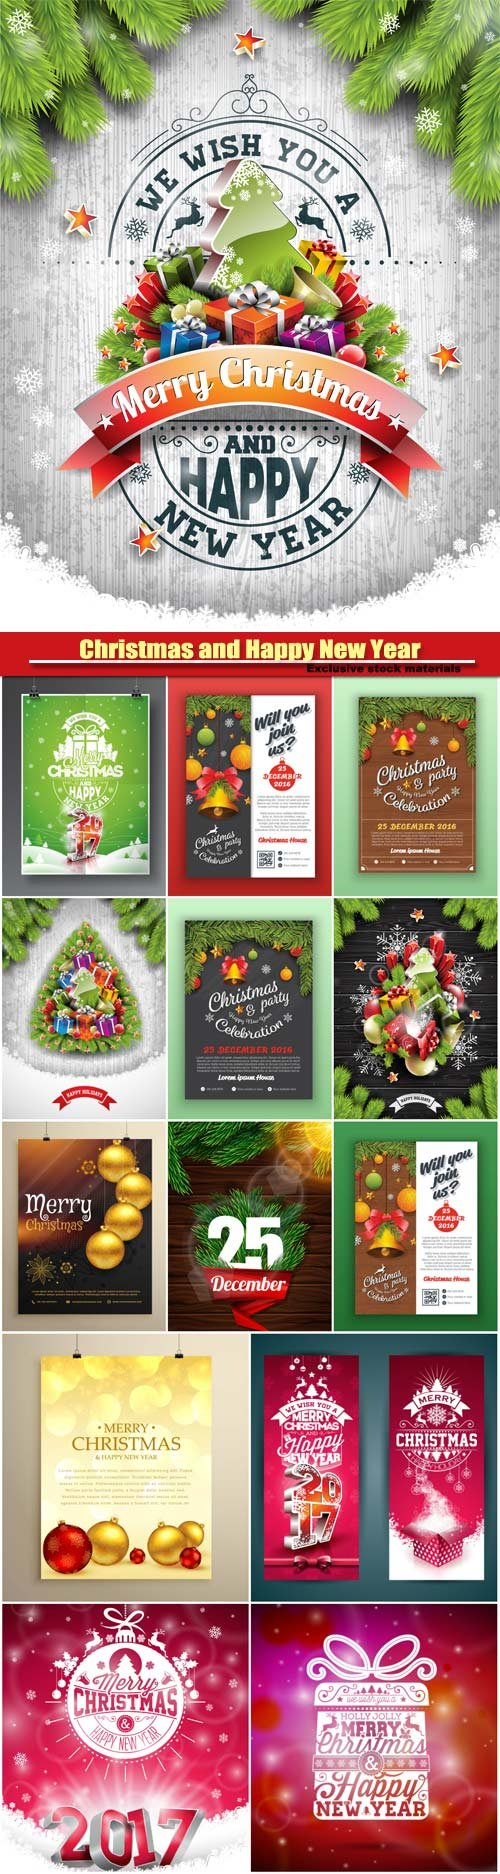 christmas and happy new year party flyer template nitrogfx christmas and happy new year party flyer template